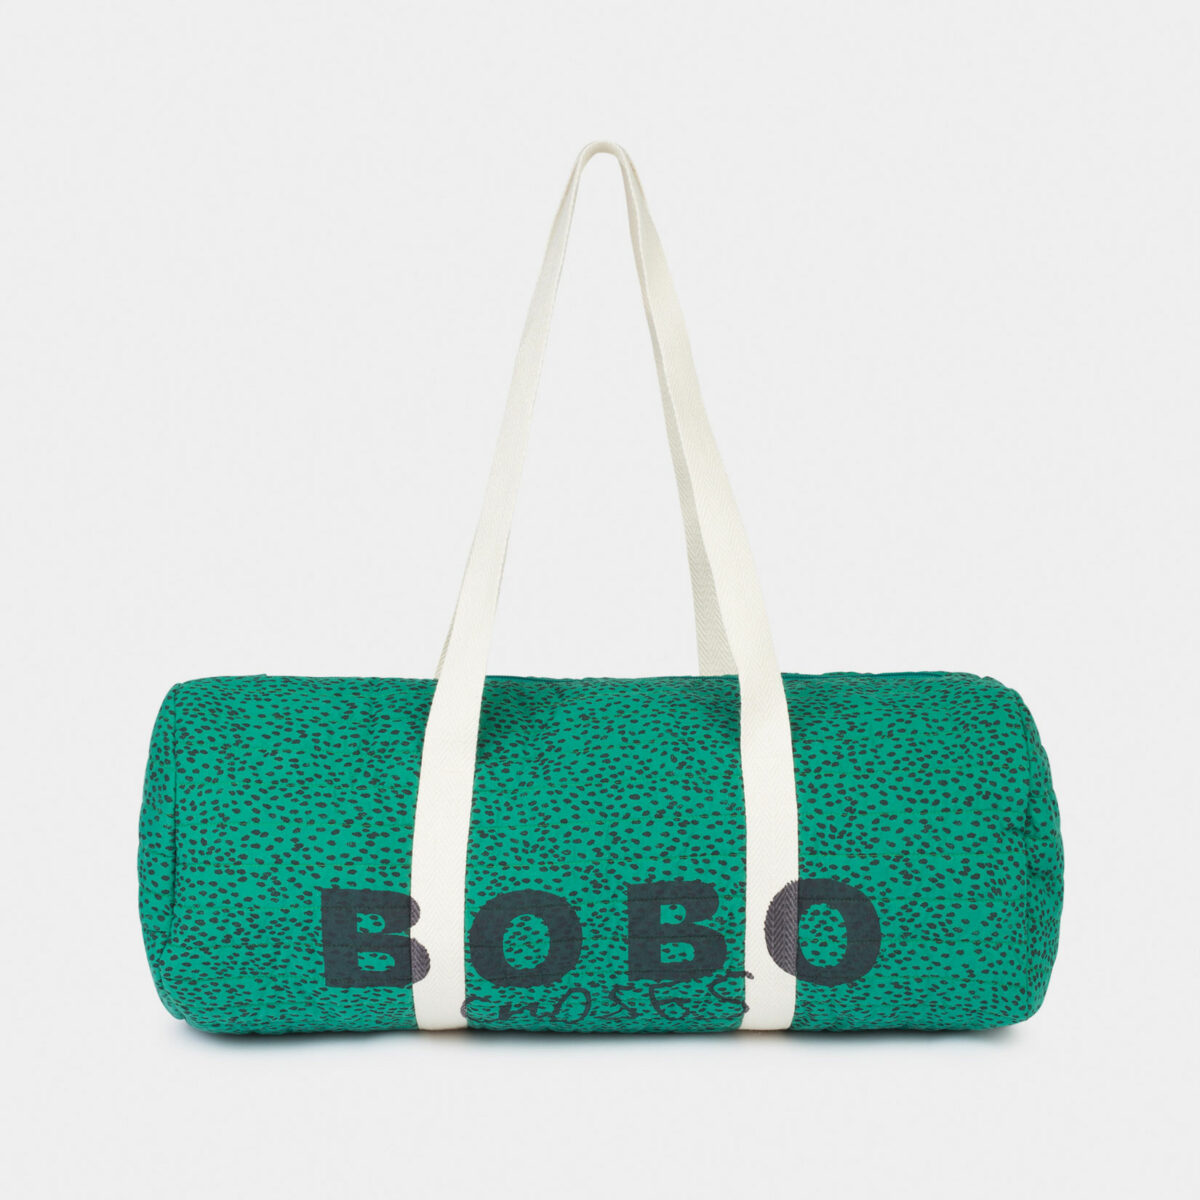 Bobo Choses - All Over Leopard Sport Bag